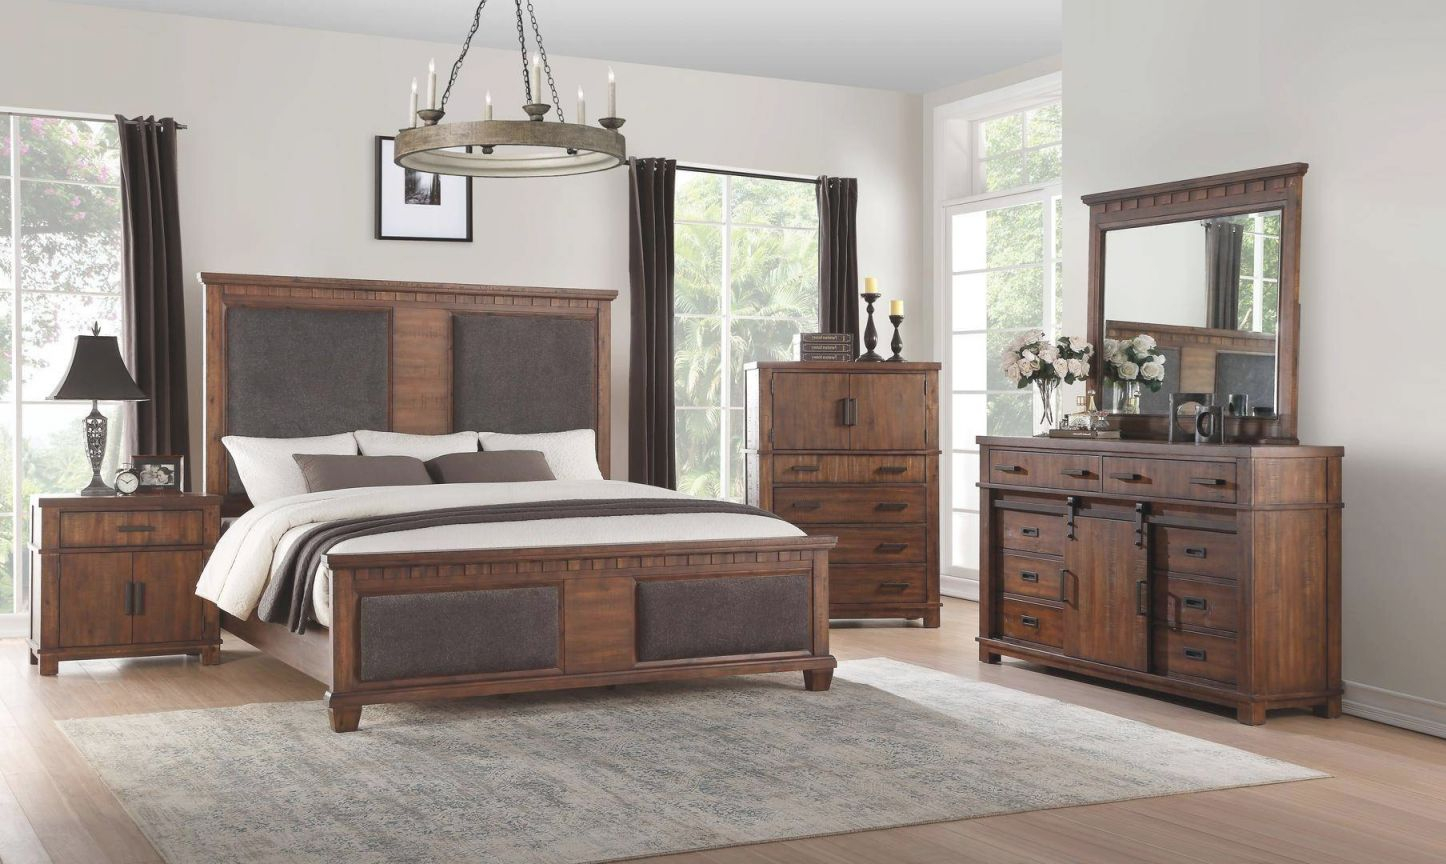 Queen Bedroom Set 3 Pcs Cherry Oak & Brown Fabric 27160Q Vibia Acme within Cheap Queen Bedroom Furniture Sets